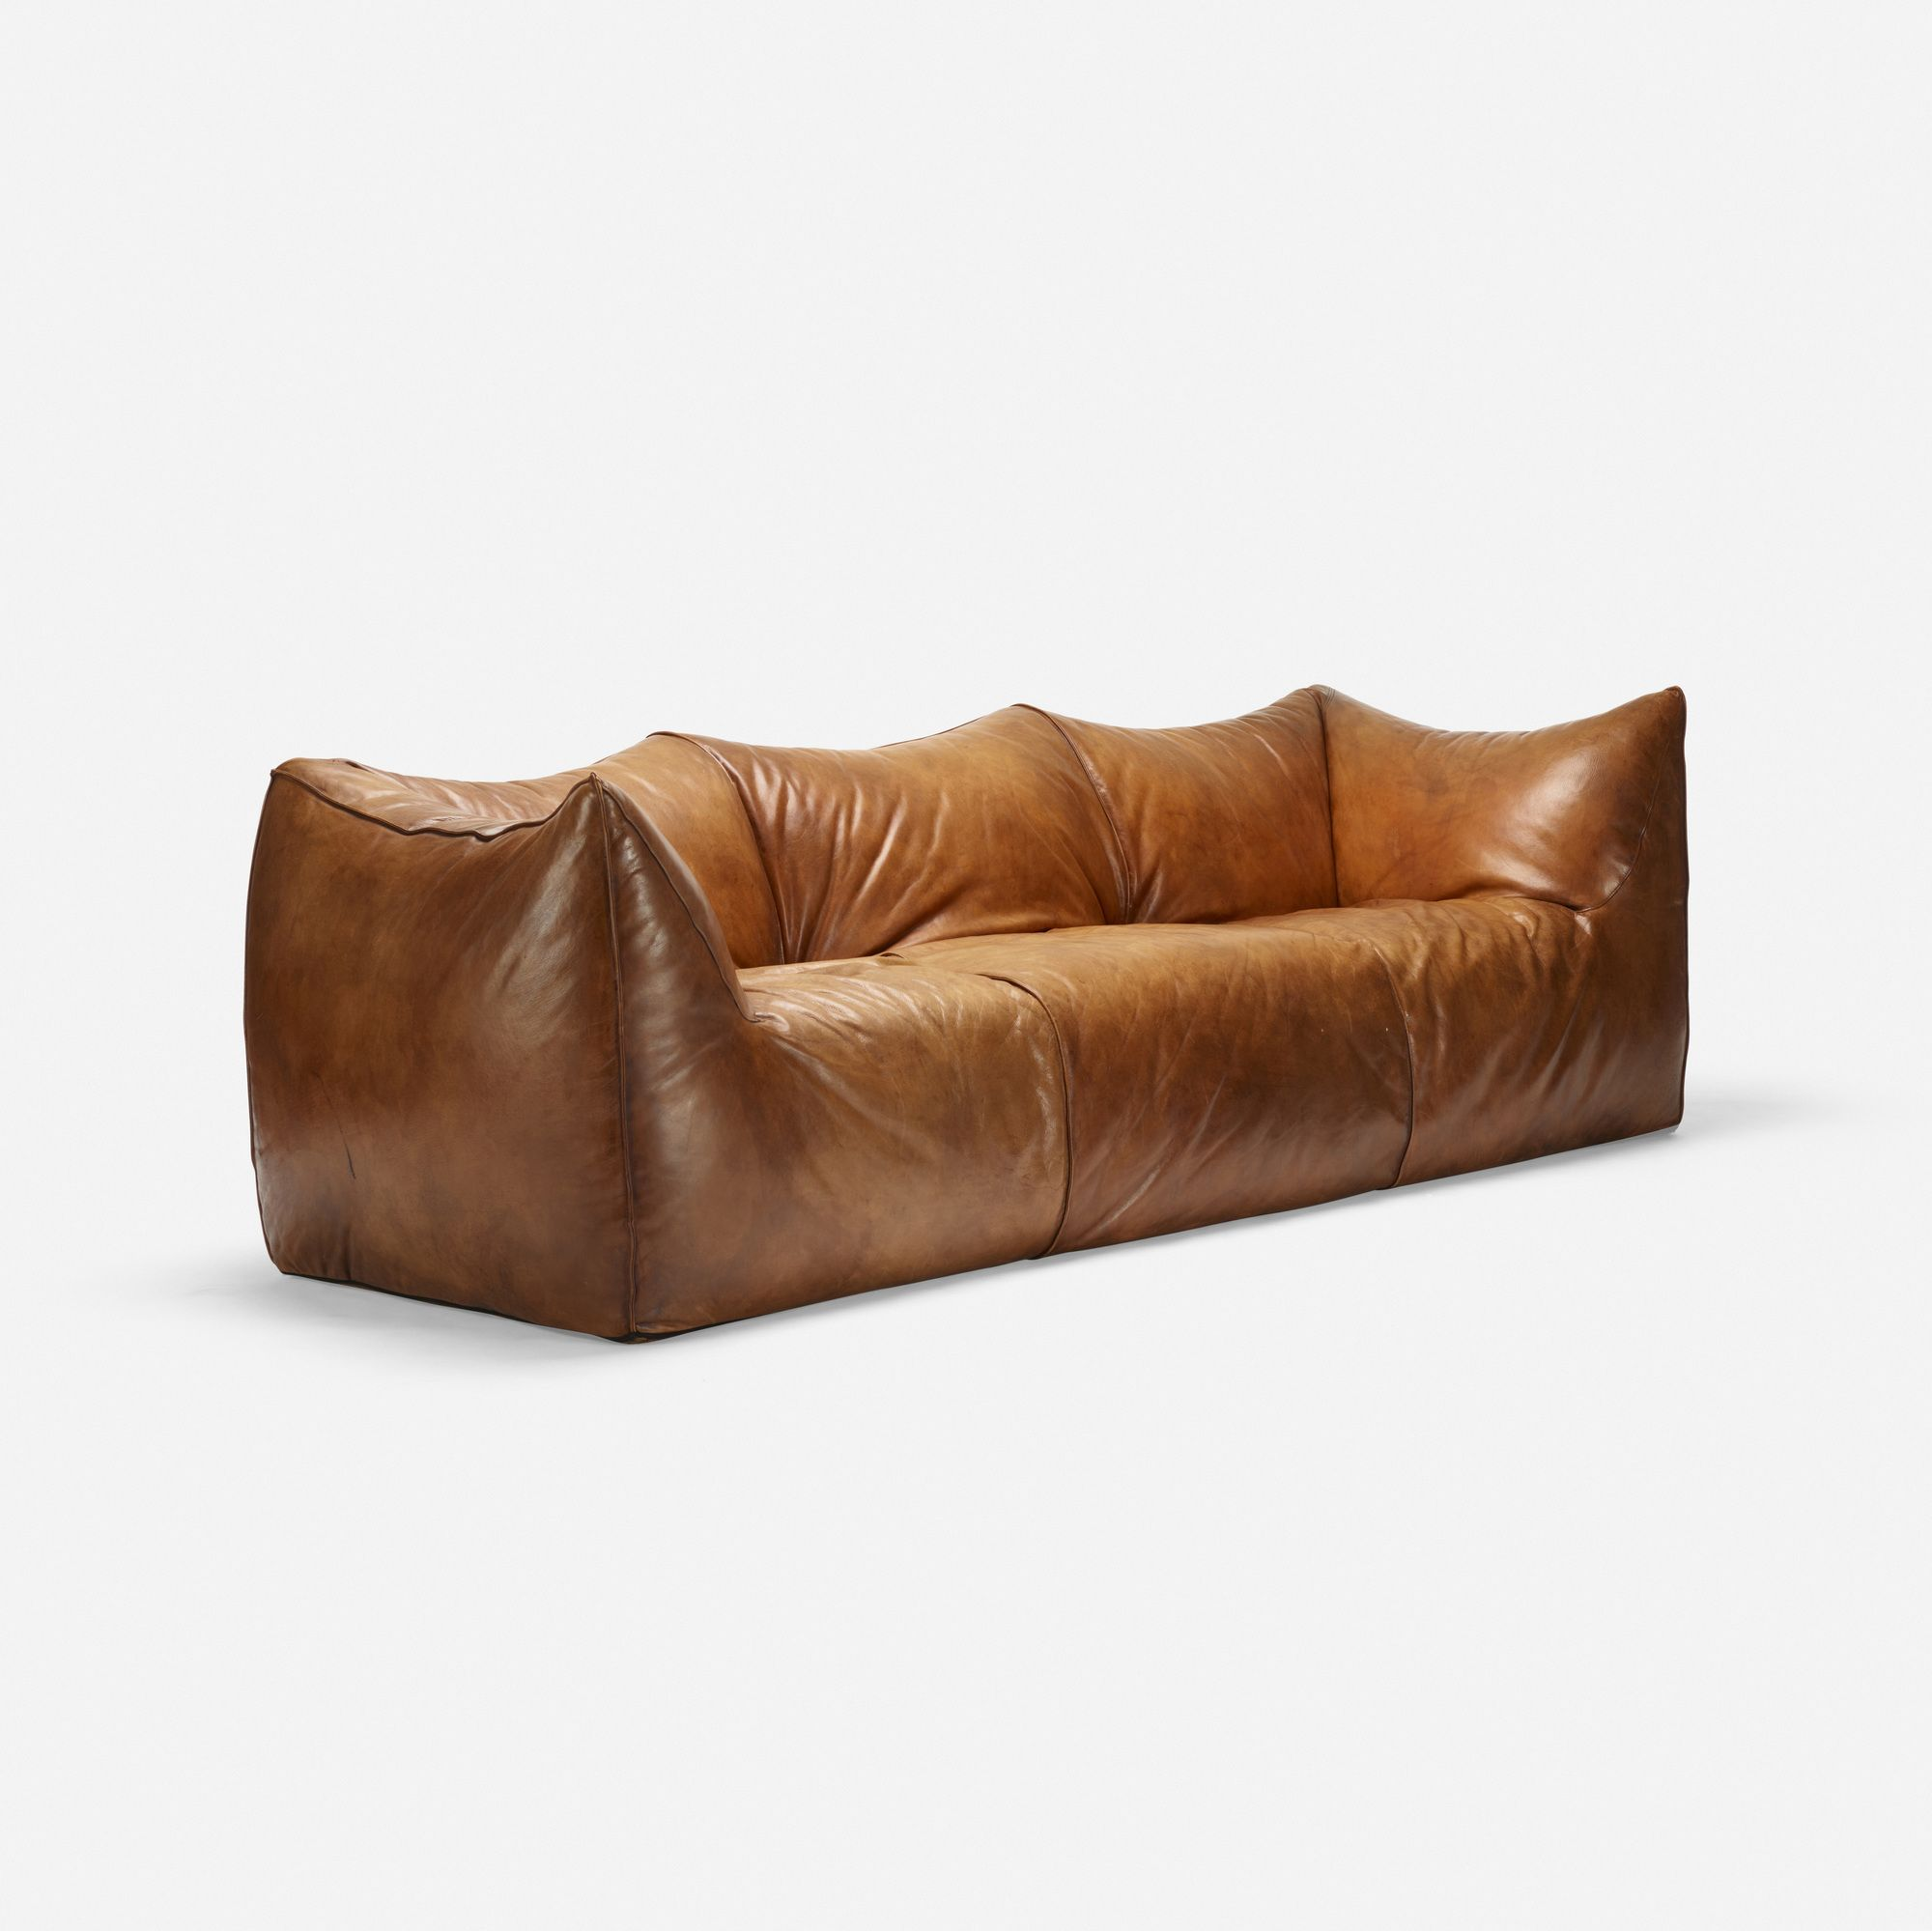 261 Mario Bellini Le Bambole sofa 2 of 2